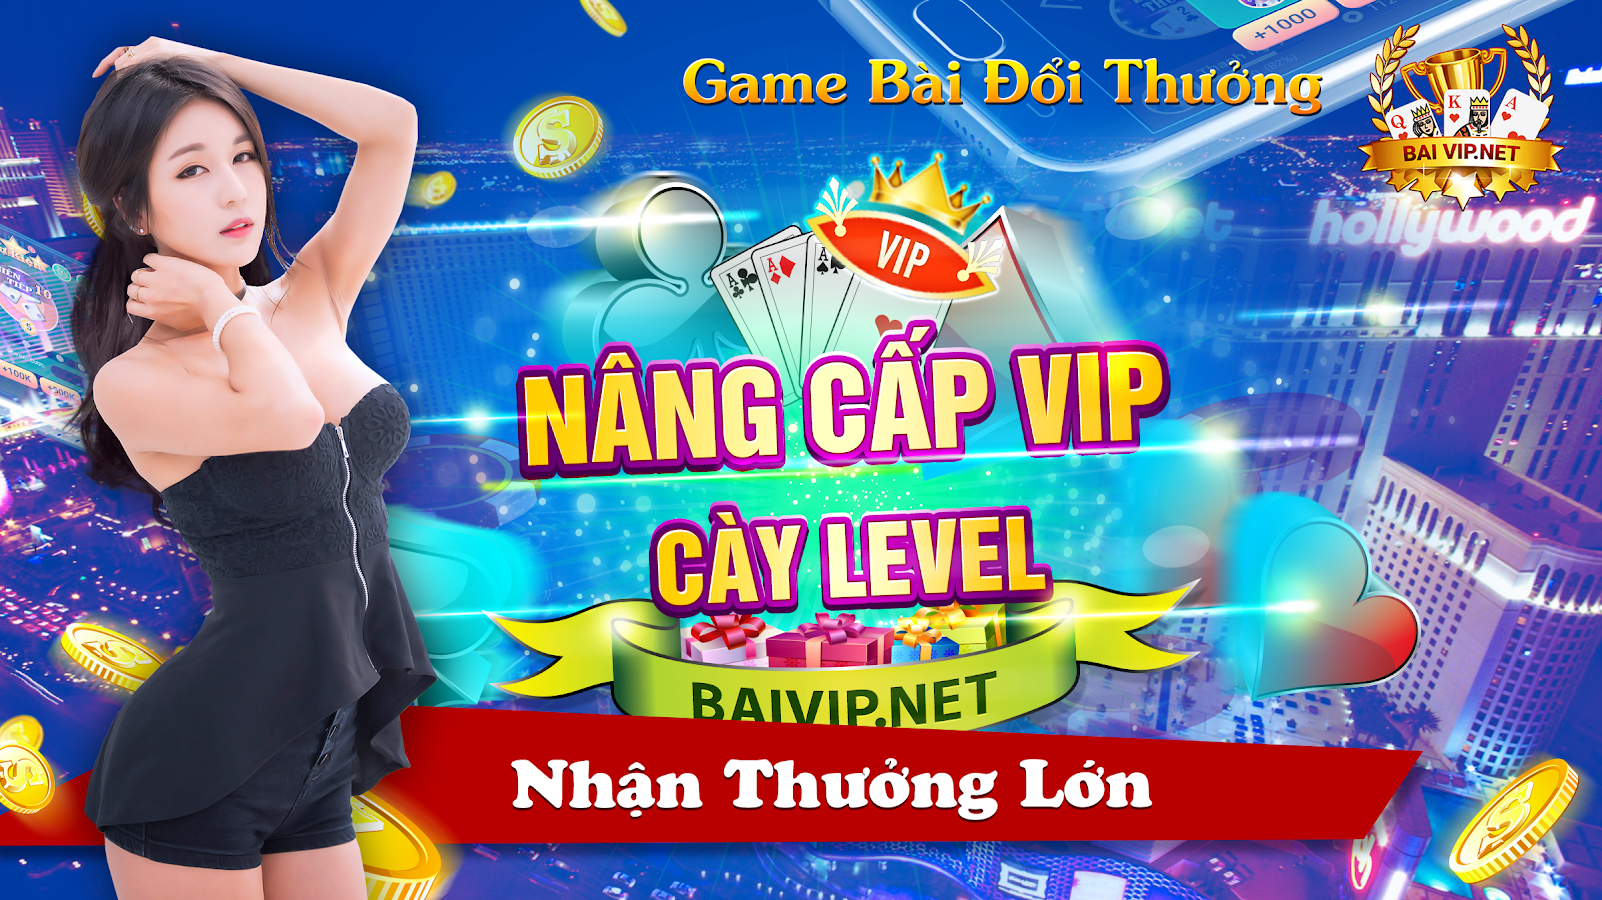 Game Bài Vip Online Screenshot 15